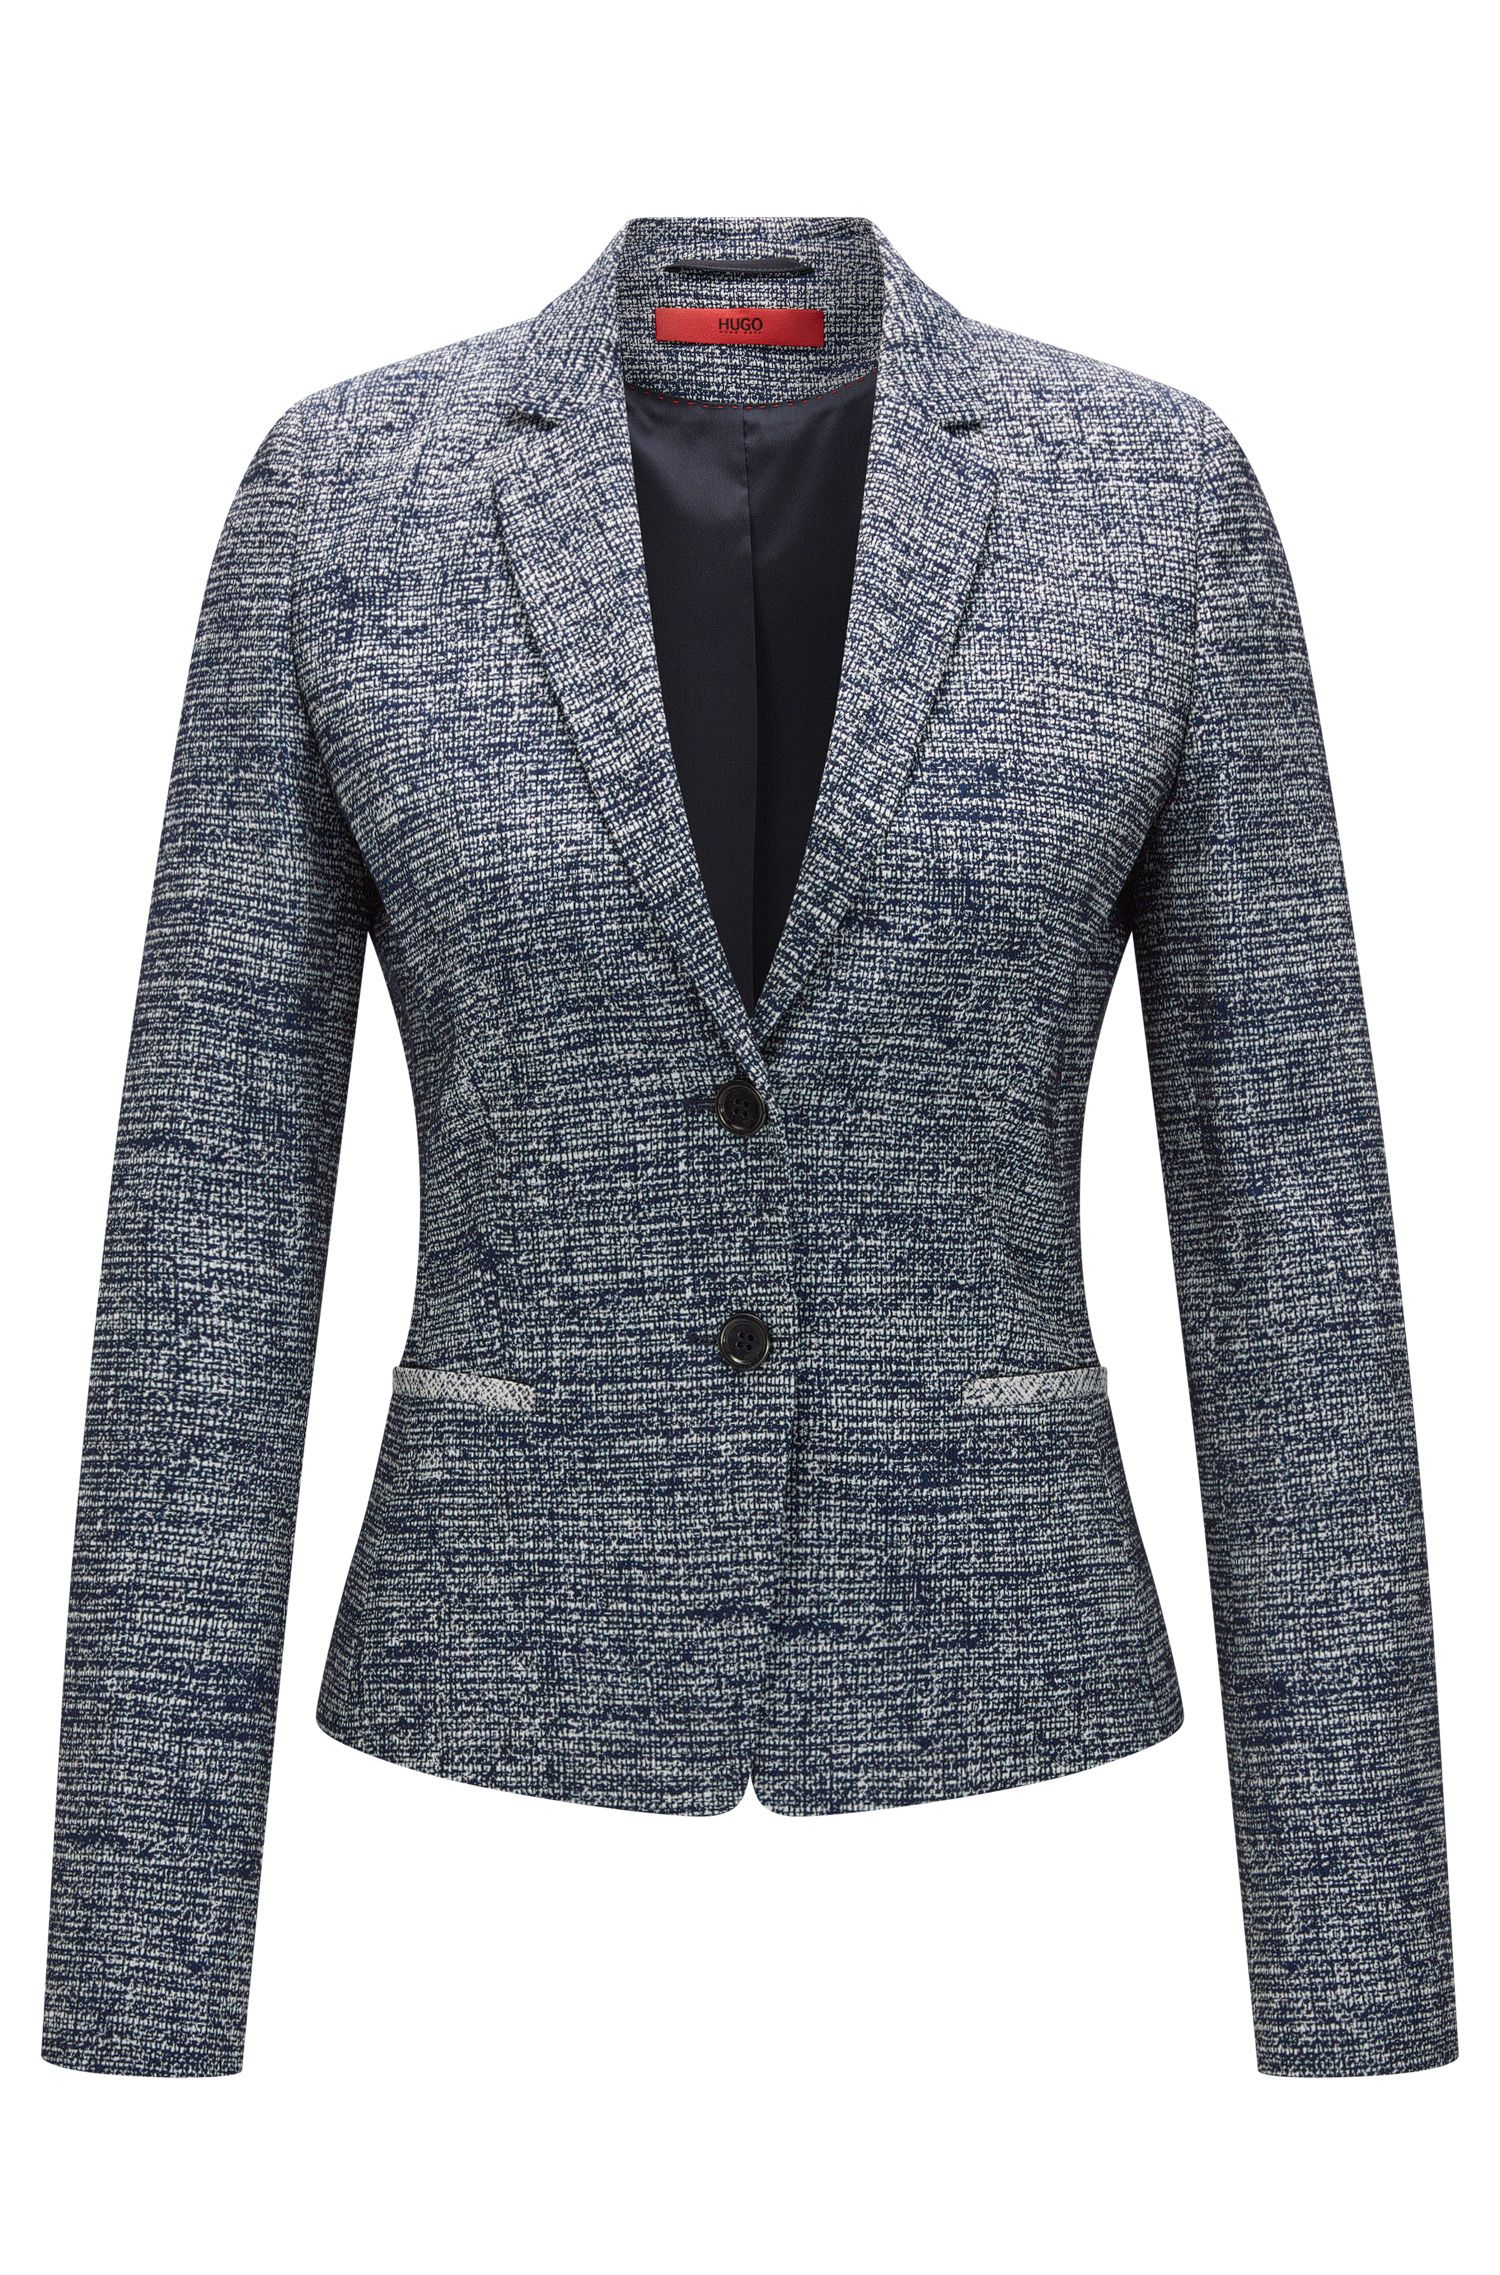 Blazer Regular Fit en tweed de coton mélangé